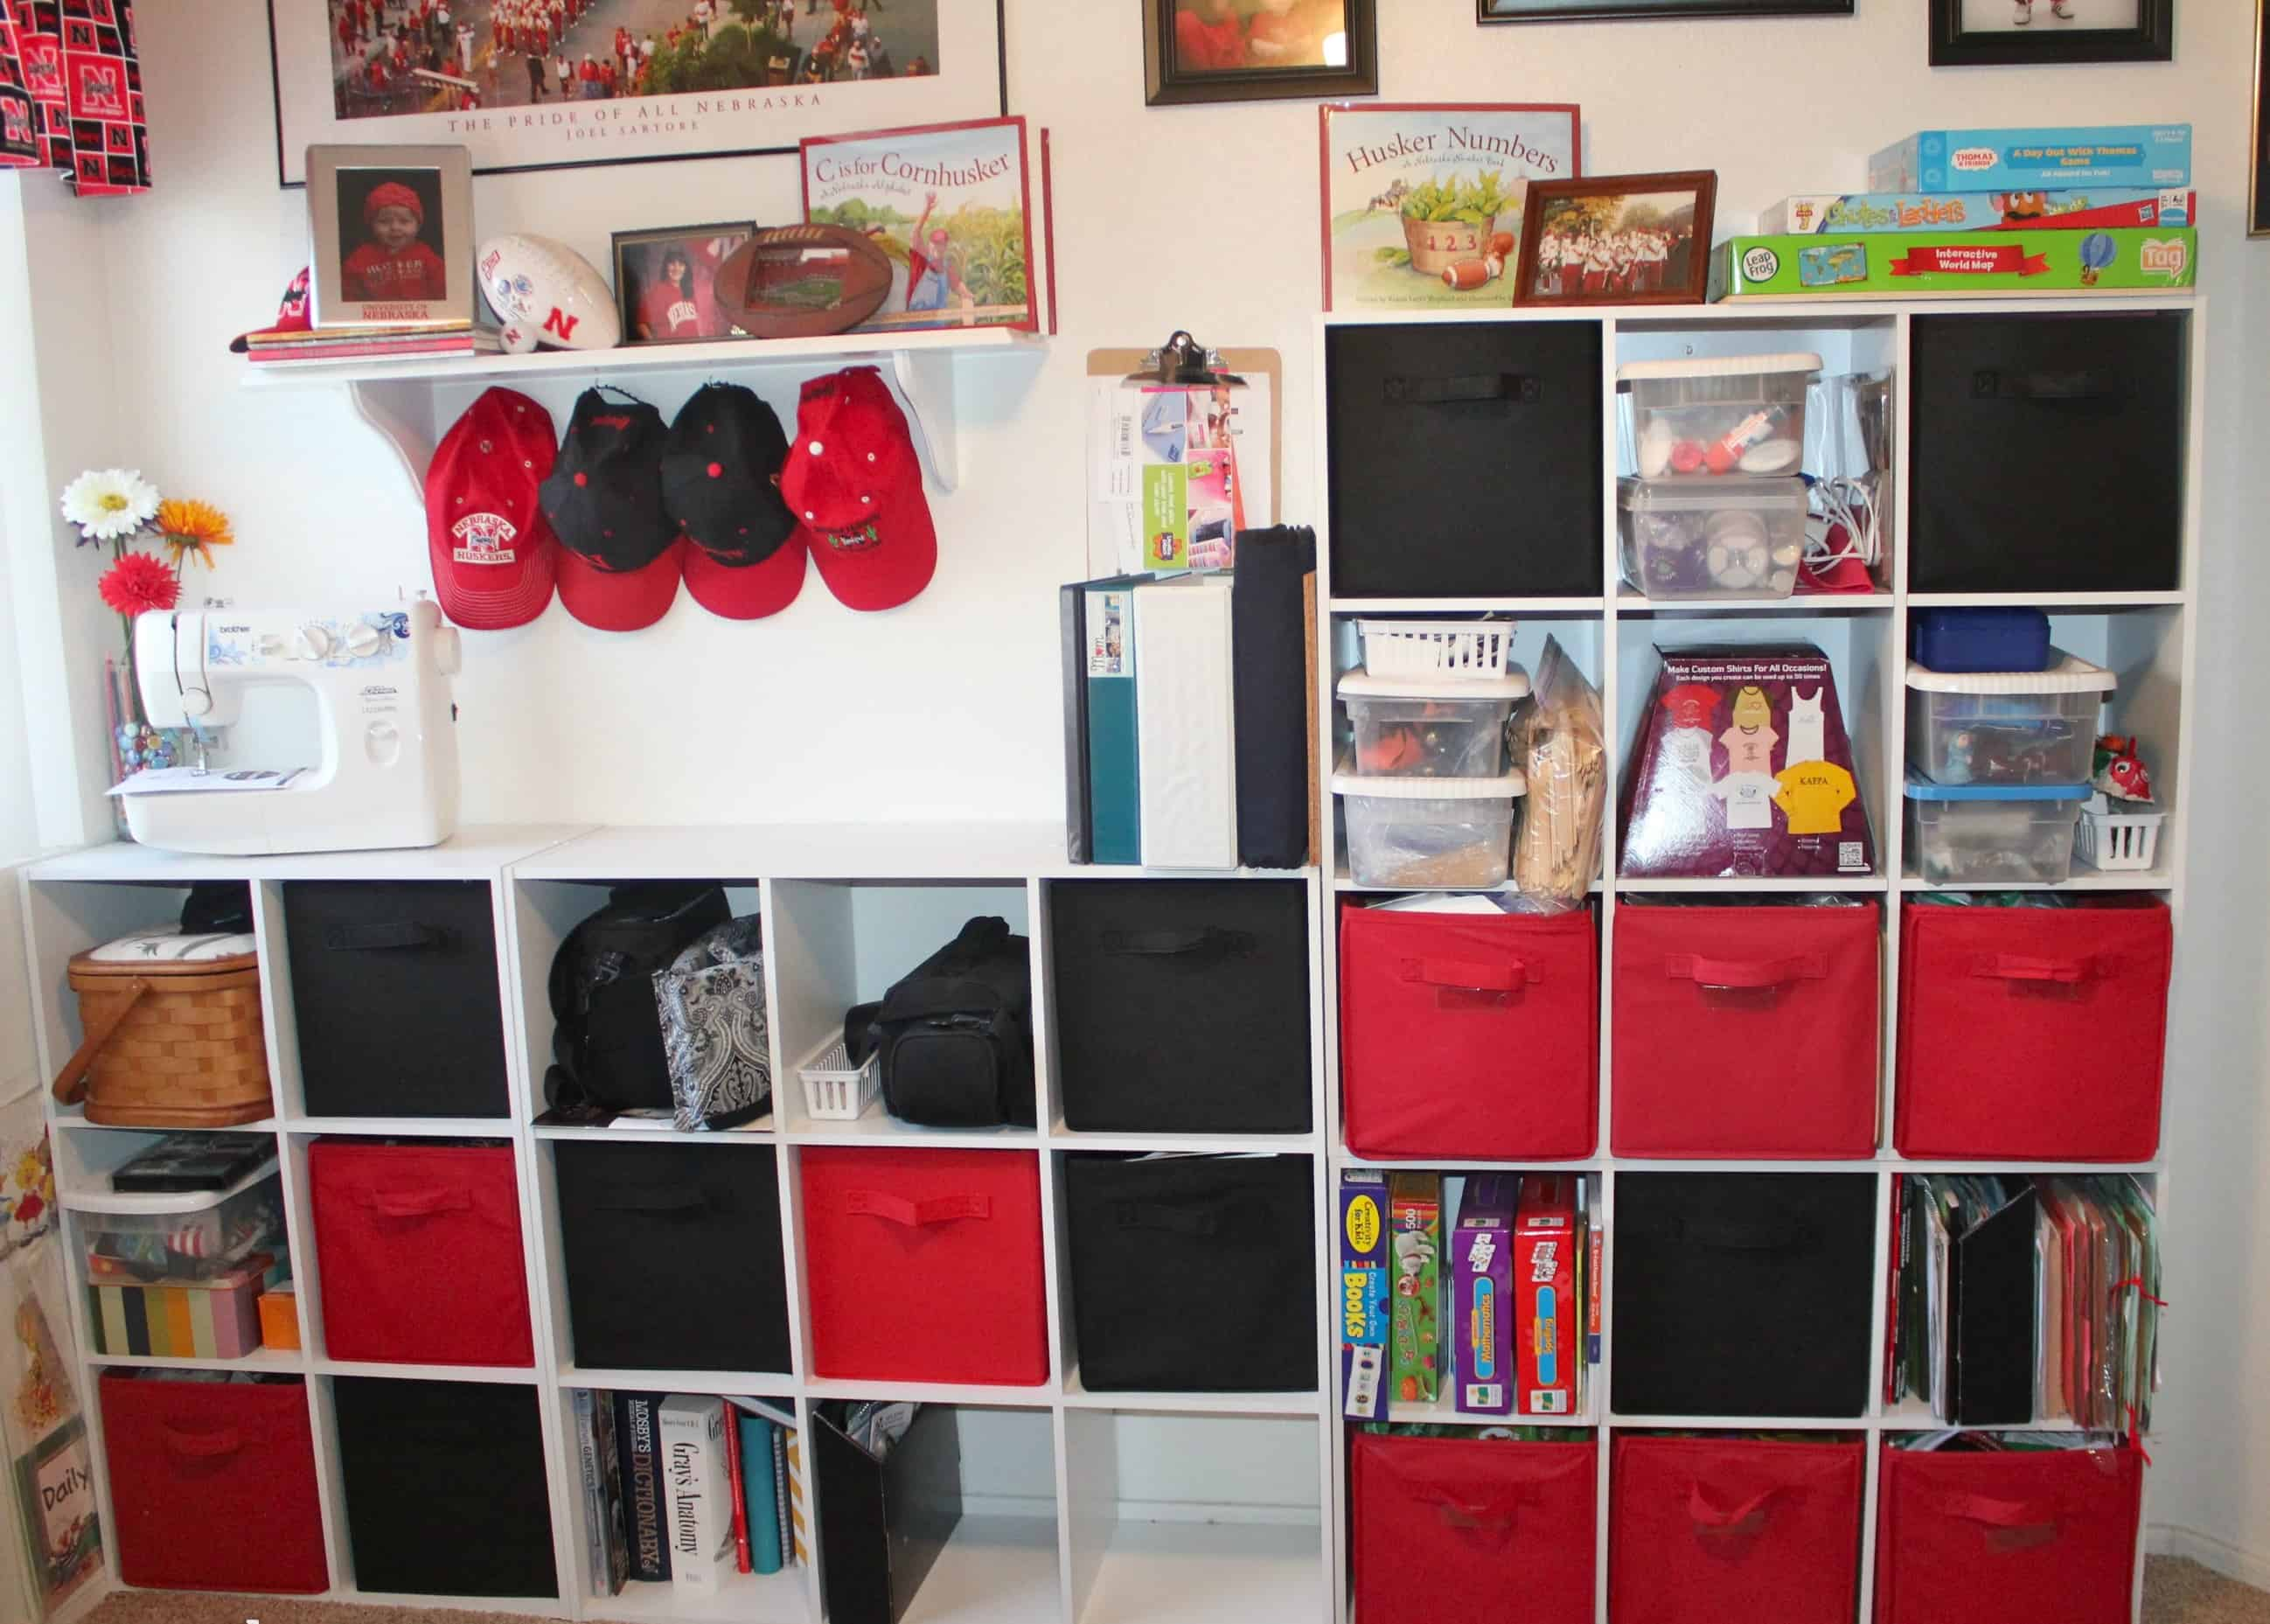 Cubby shelving with insert drawers